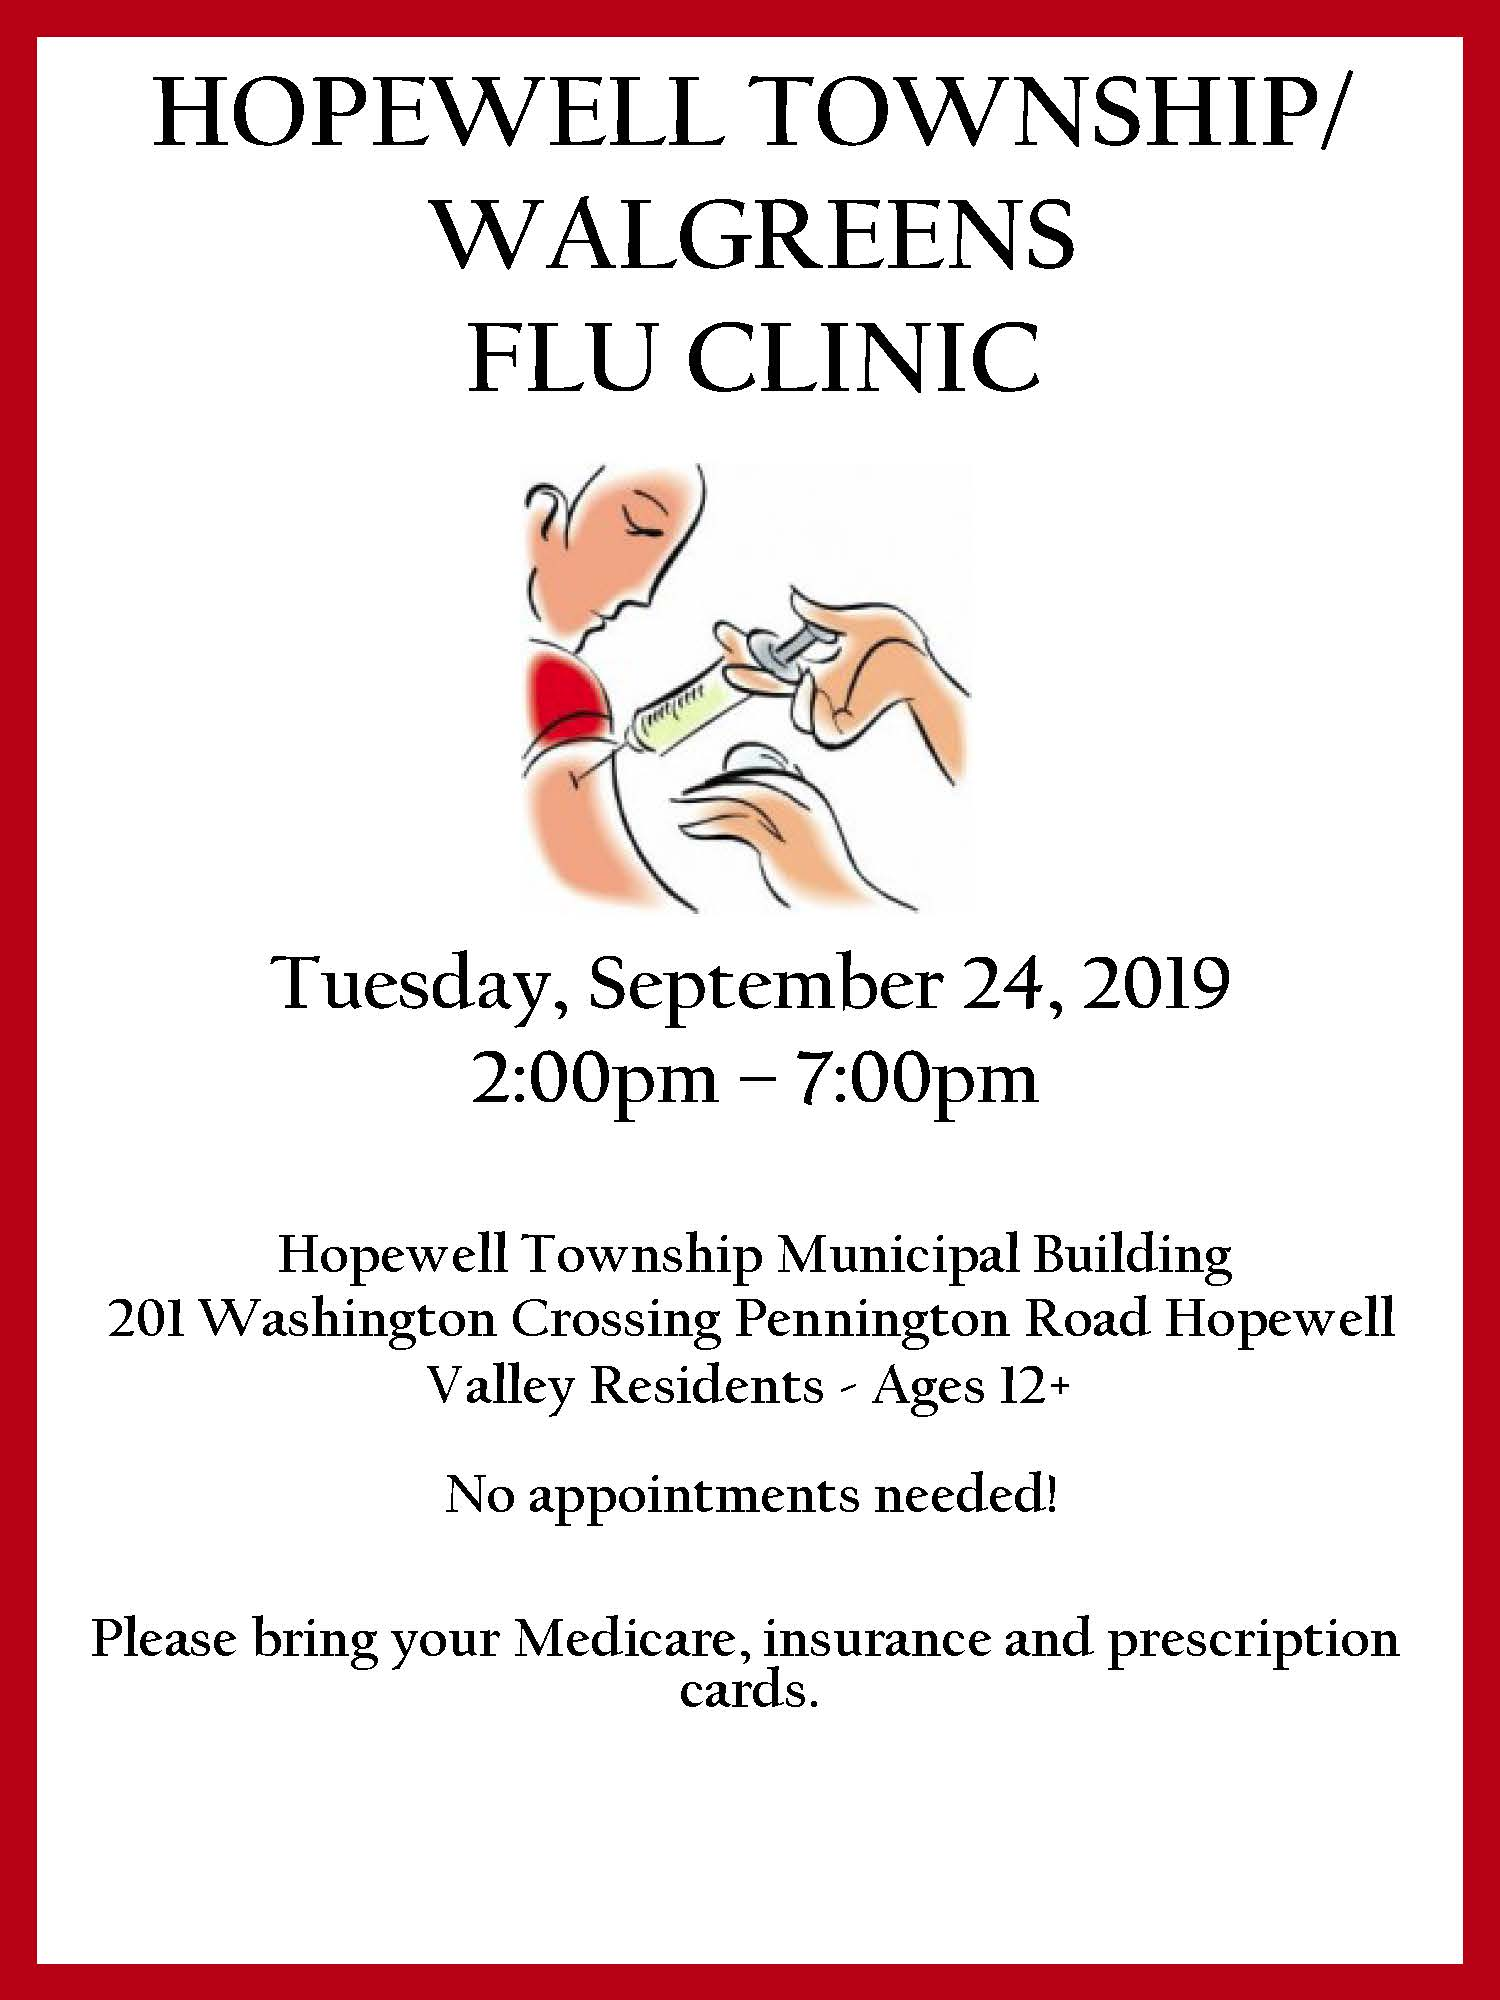 2019 Flu Clinic Flyer